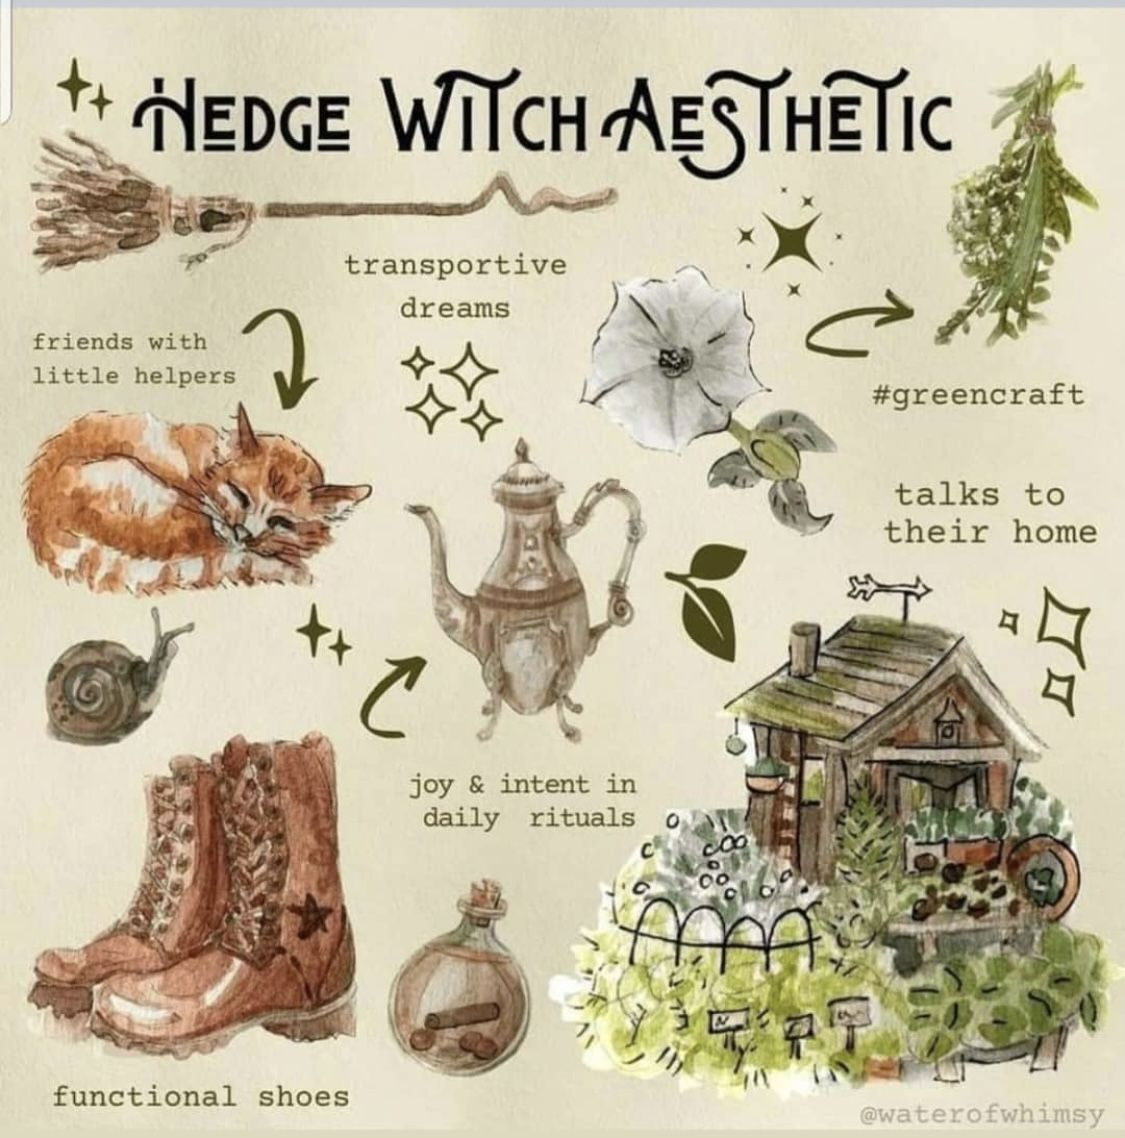 Witchy Inspiration - Hedge Witch Aesthetic